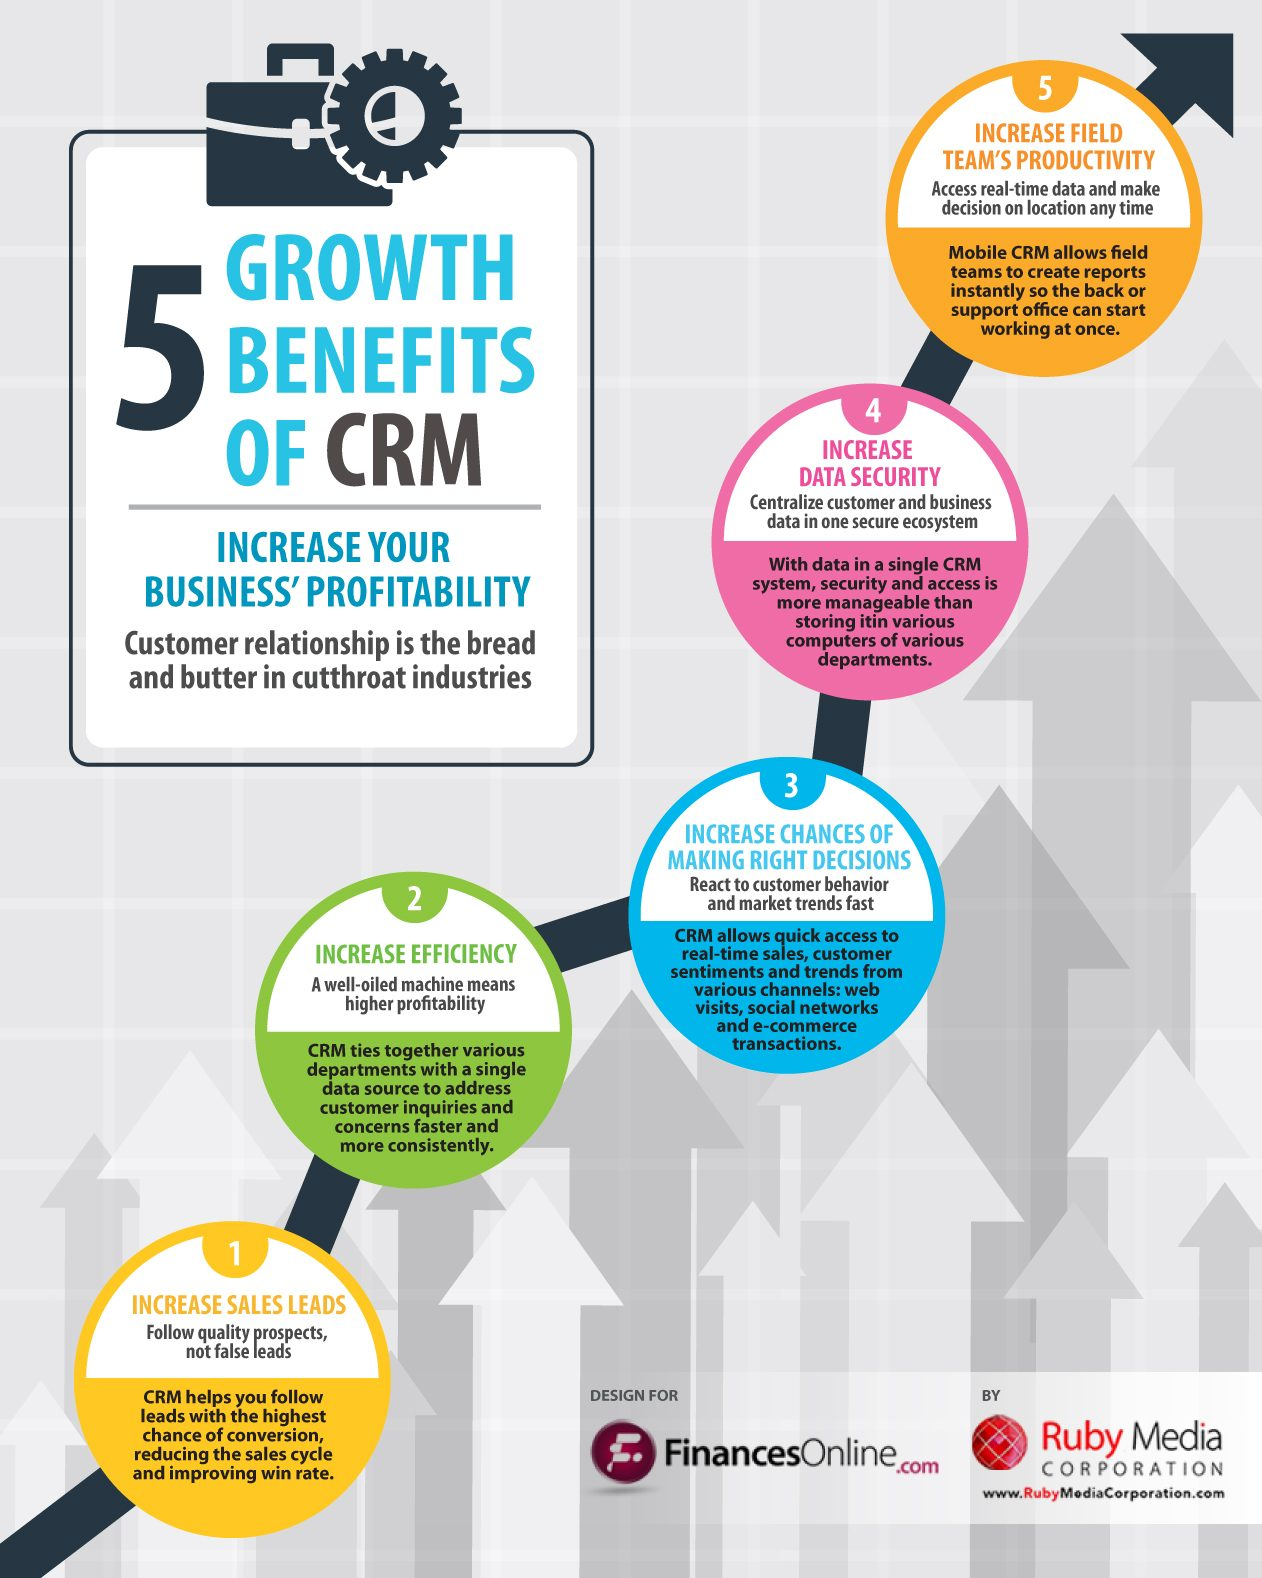 5 Growth Benefits of CRM Software